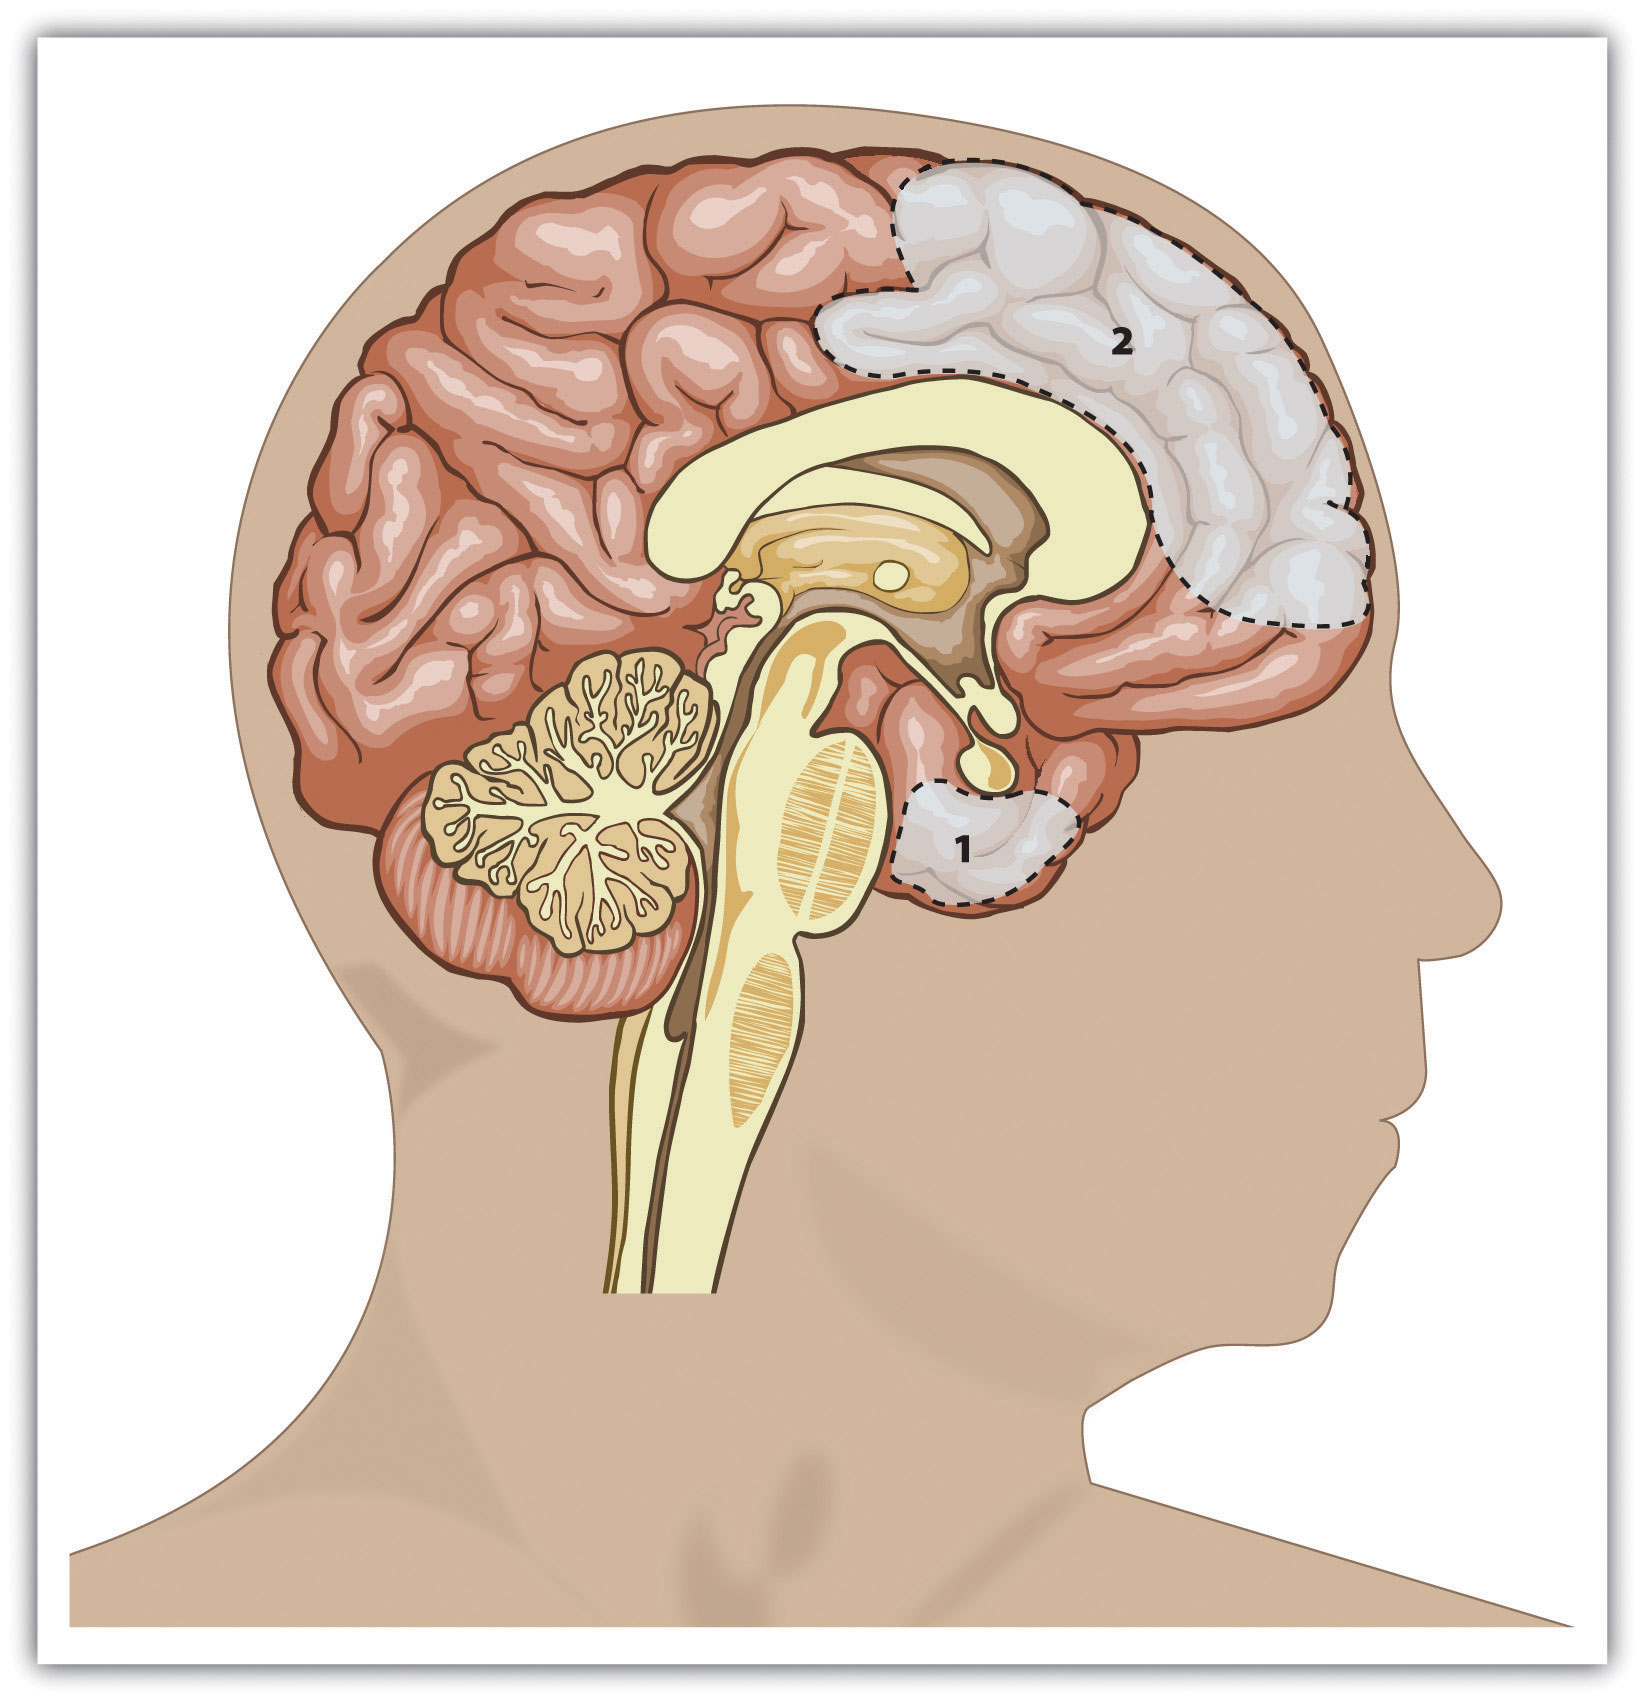 Brain regions that influence aggression include the amygdala (area 1) and the prefrontal cortex (area 2). Individual differences in one or more of these regions or in the interconnections among them can increase the propensity for impulsive aggression.